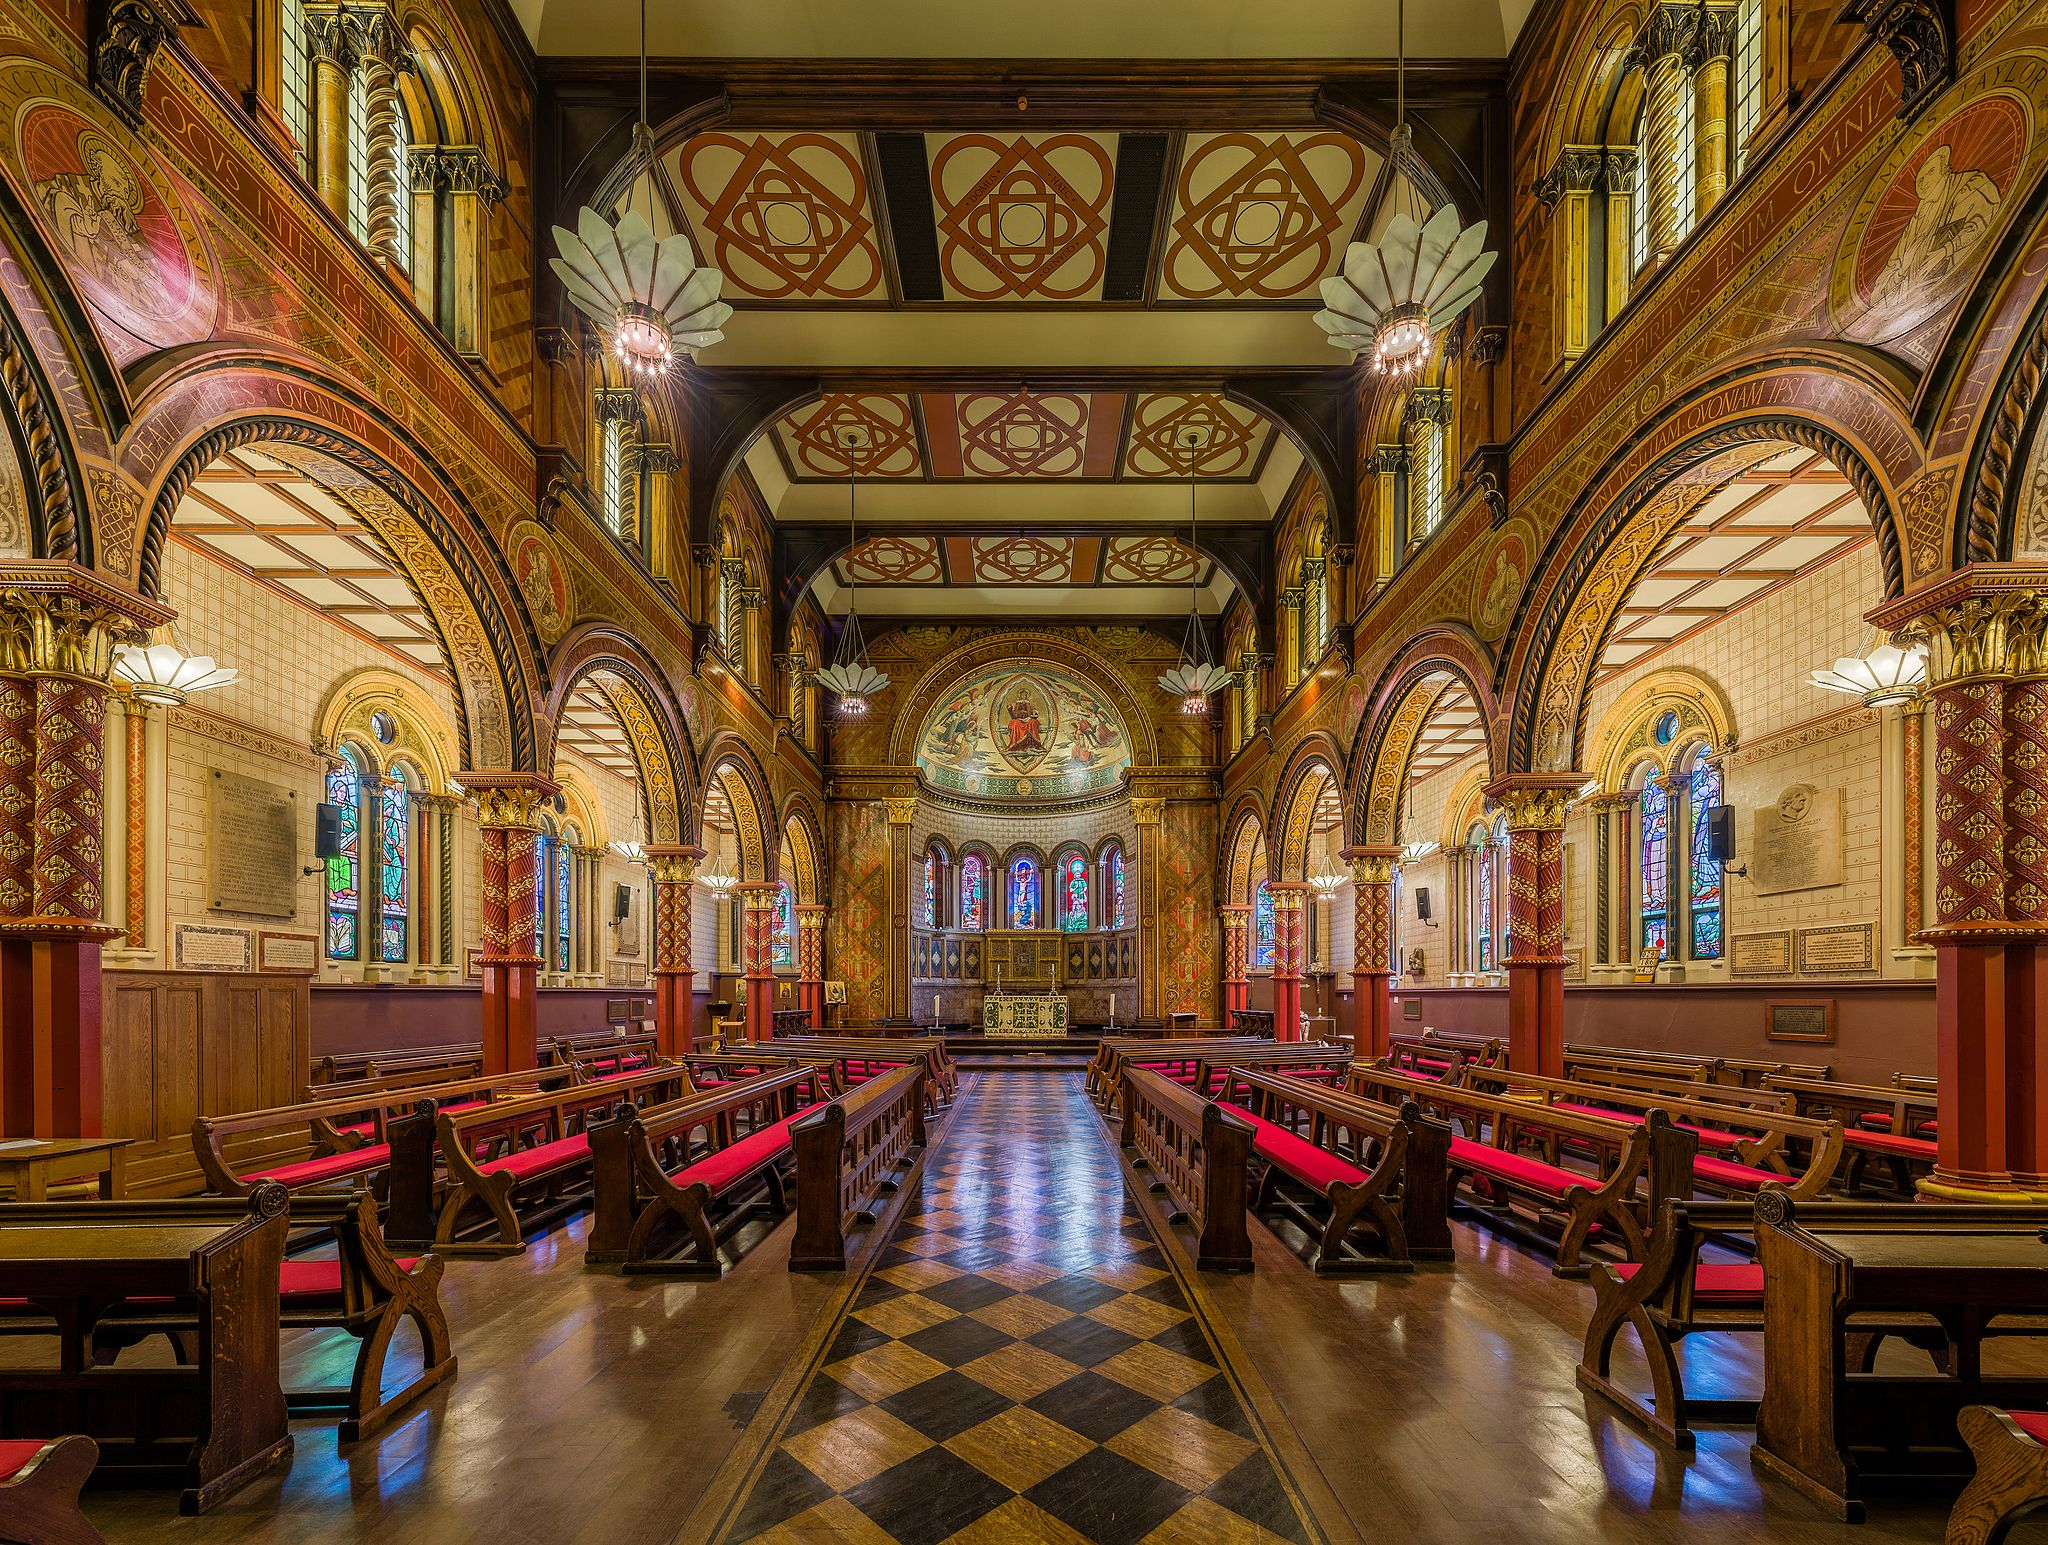 An elaborate room in King's College London with carved wooden arches and inlaid parquet floors